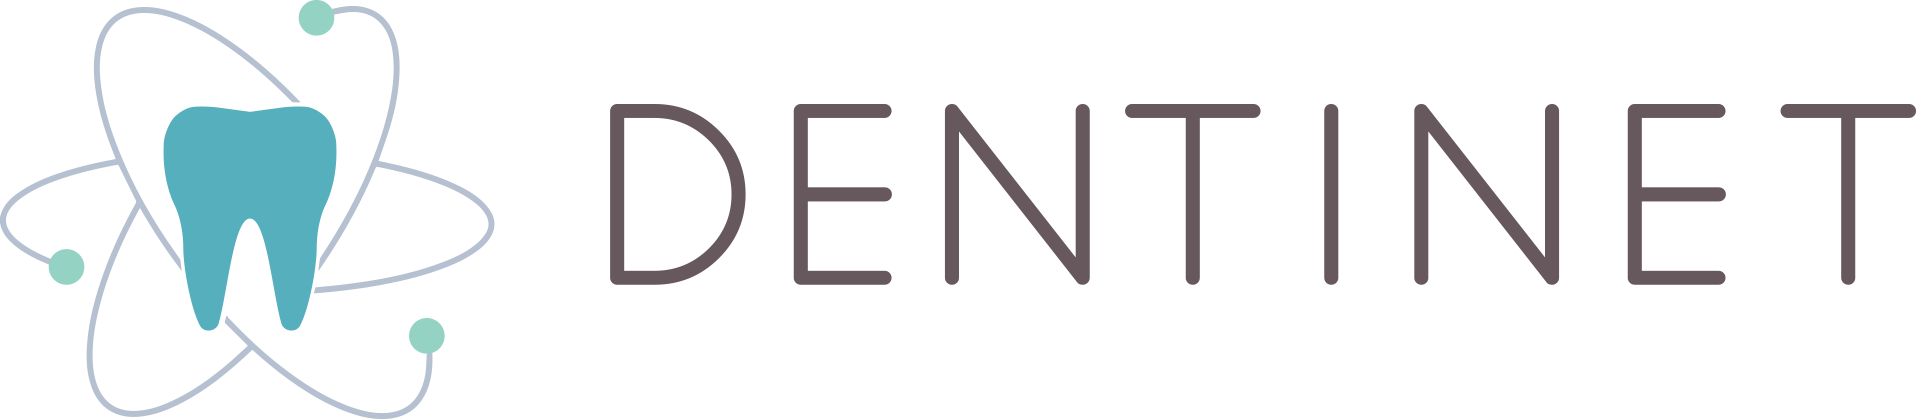 Dentinet, websites optimized for Dentists